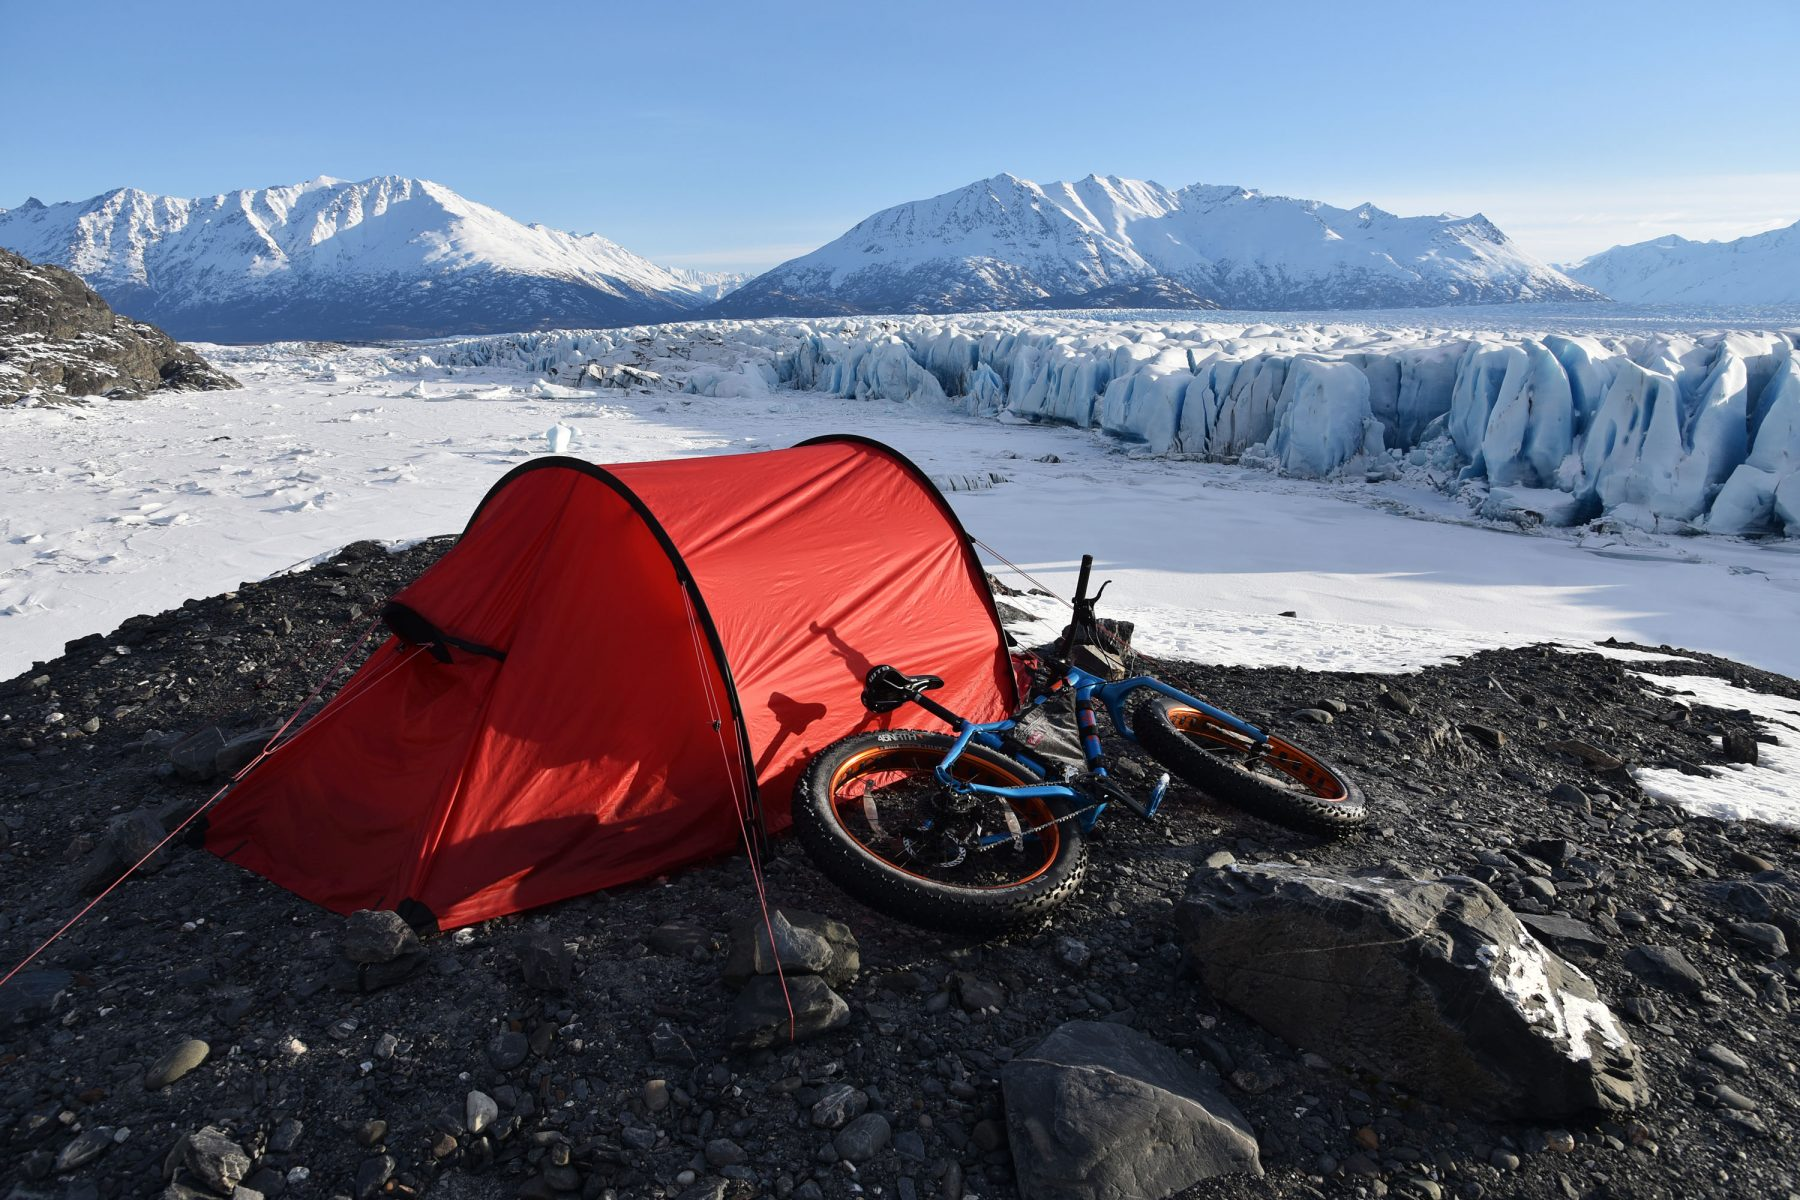 Campsite at Knik Glacier with Salsa fatbike